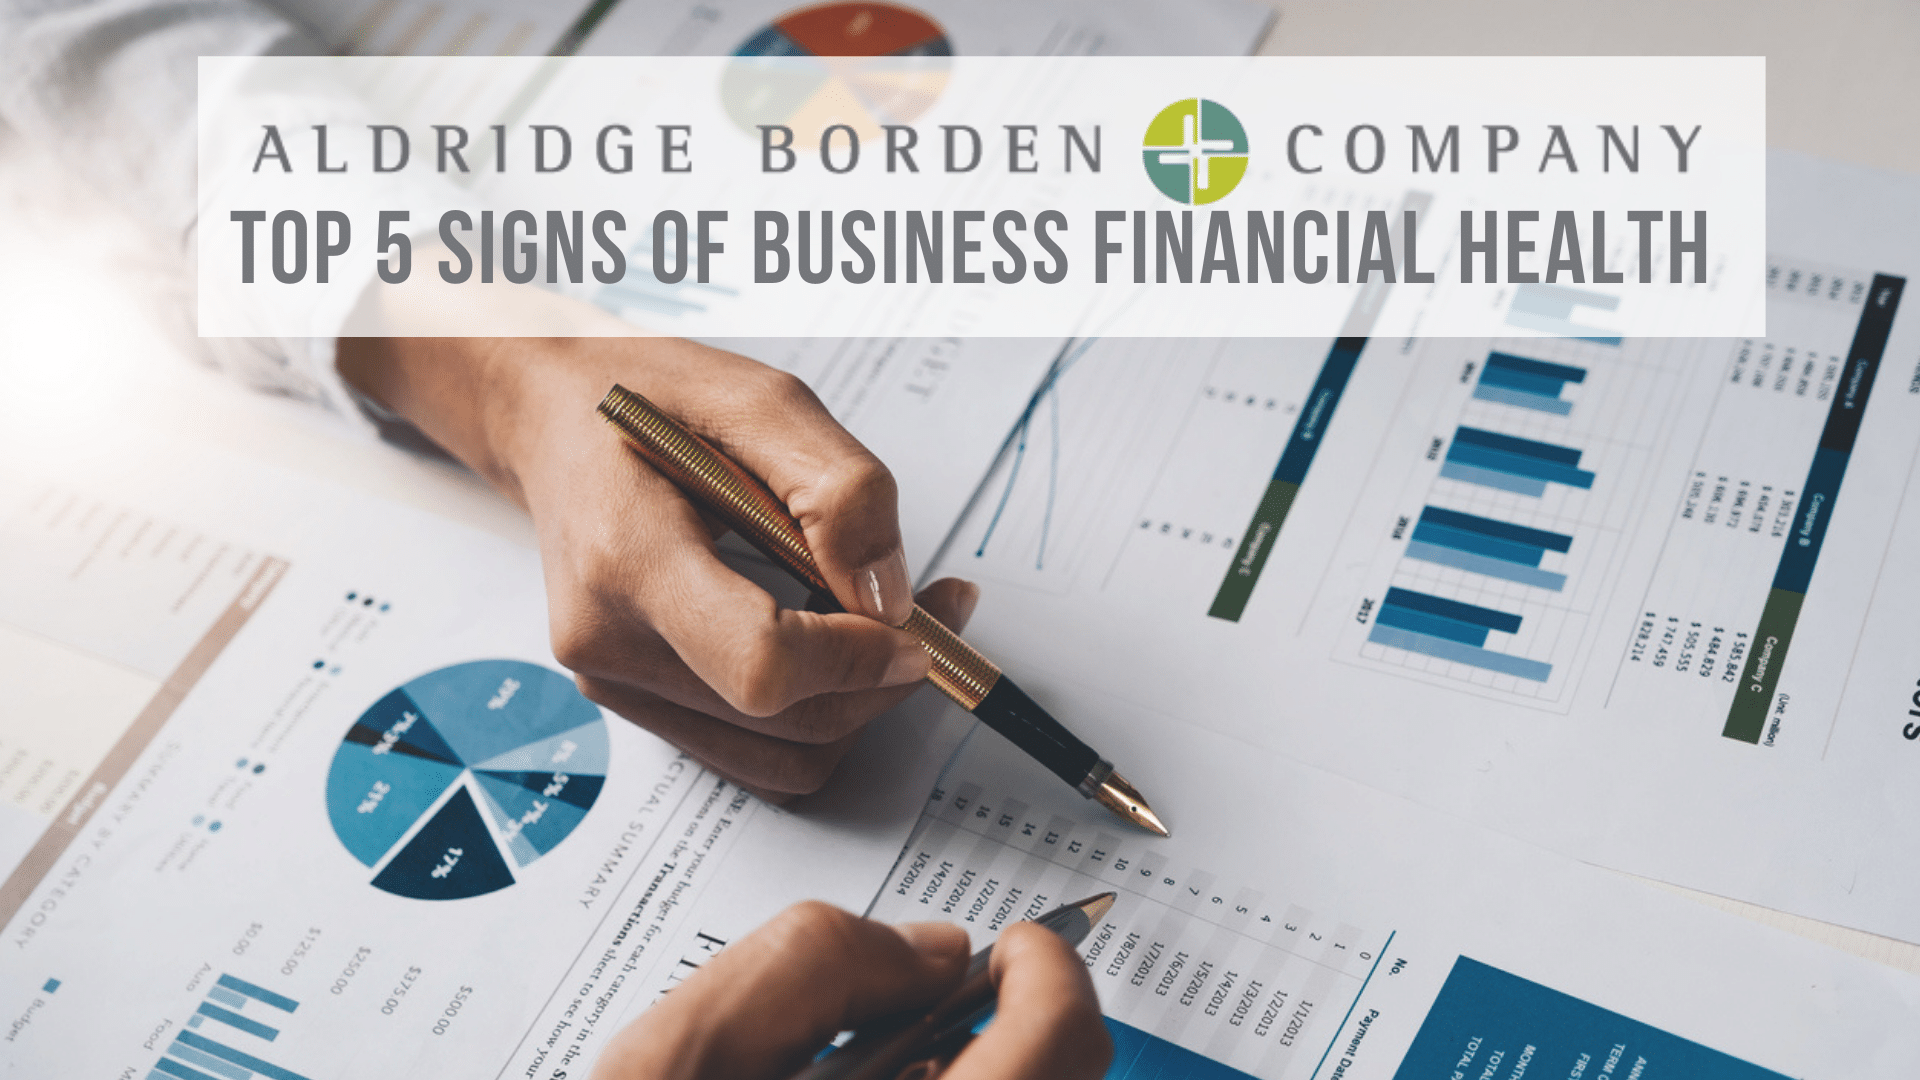 Top 5 Signs Your Business Is Financially Healthy